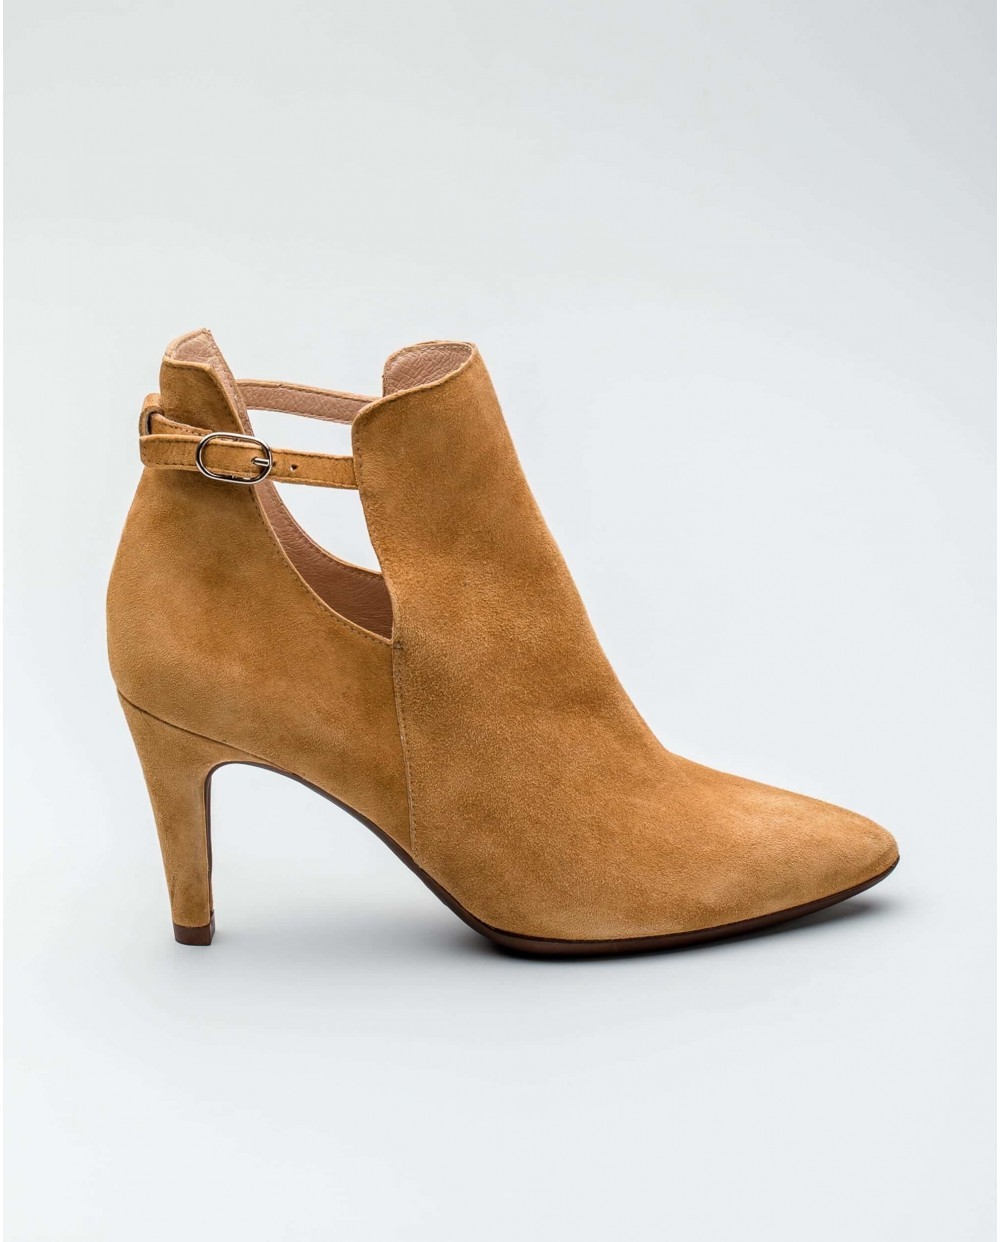 Wonders-Ankle Boots-Suede leather high heeled ankle boot